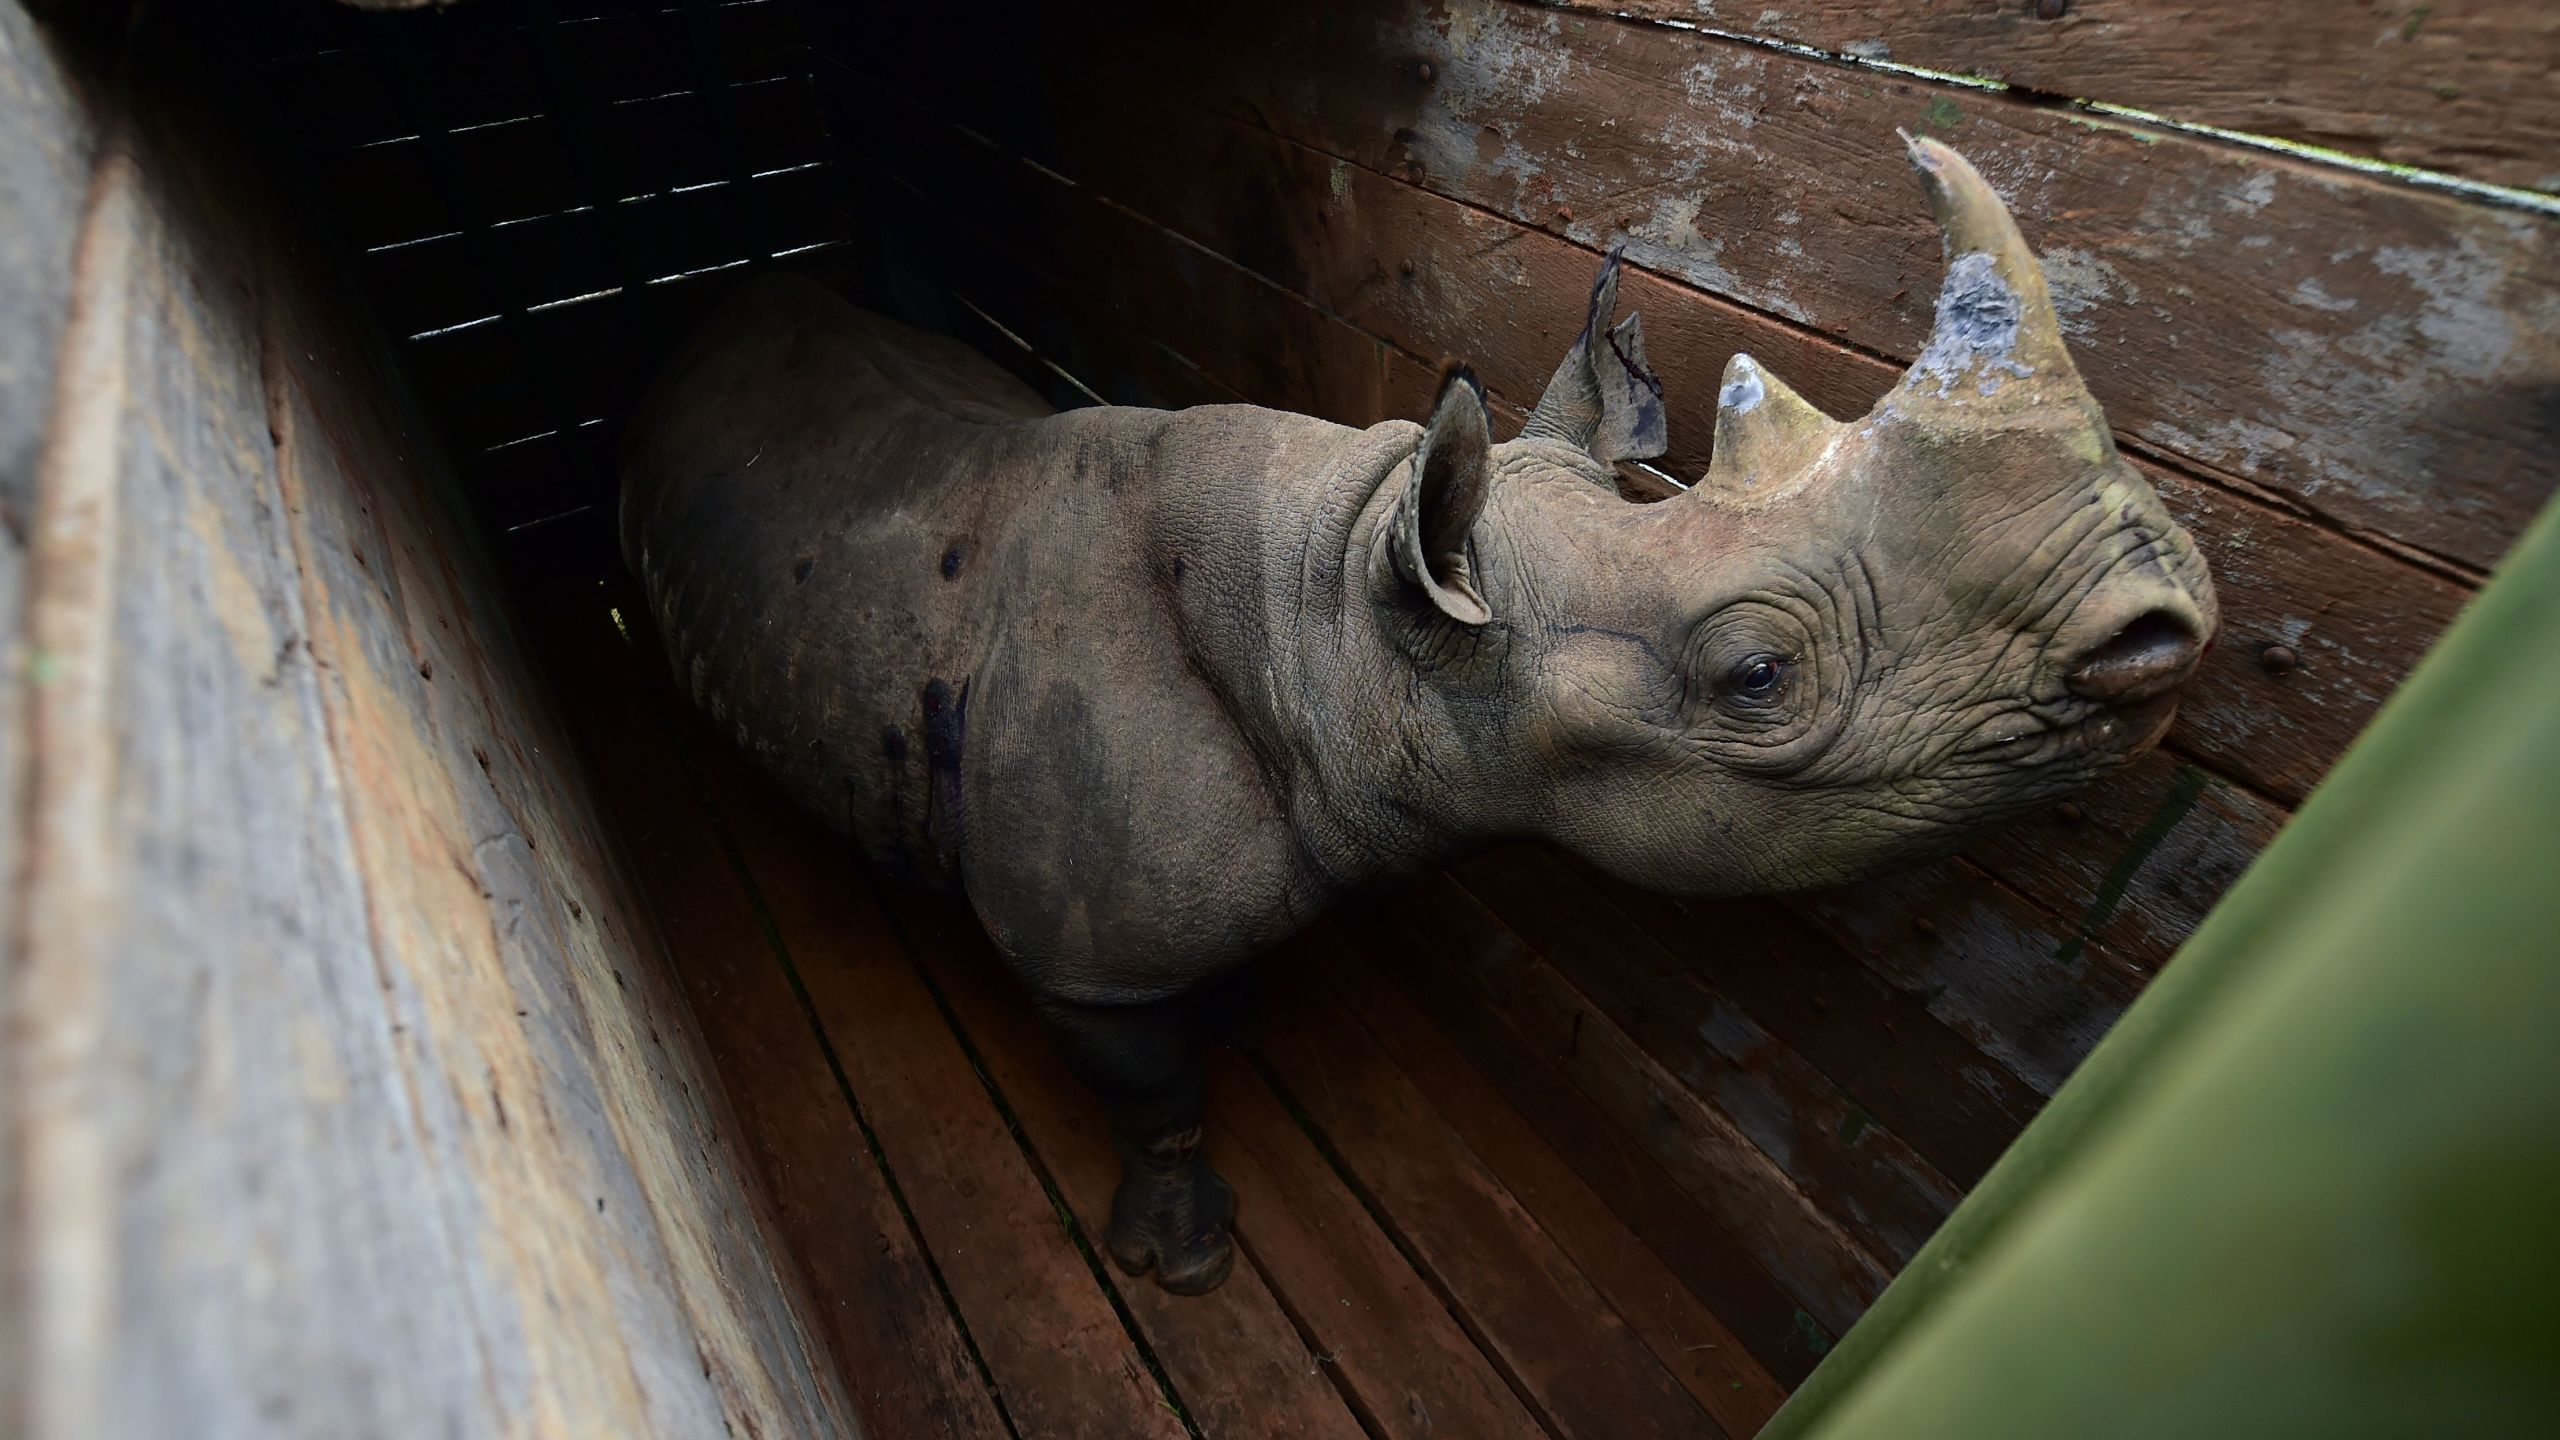 A female black rhinoceros one of three individuals about to the translocated, stands in a transport crate, in Nairobi National Park, on June 26, 2018. (Tony Karumba / AFP/Getty Images)